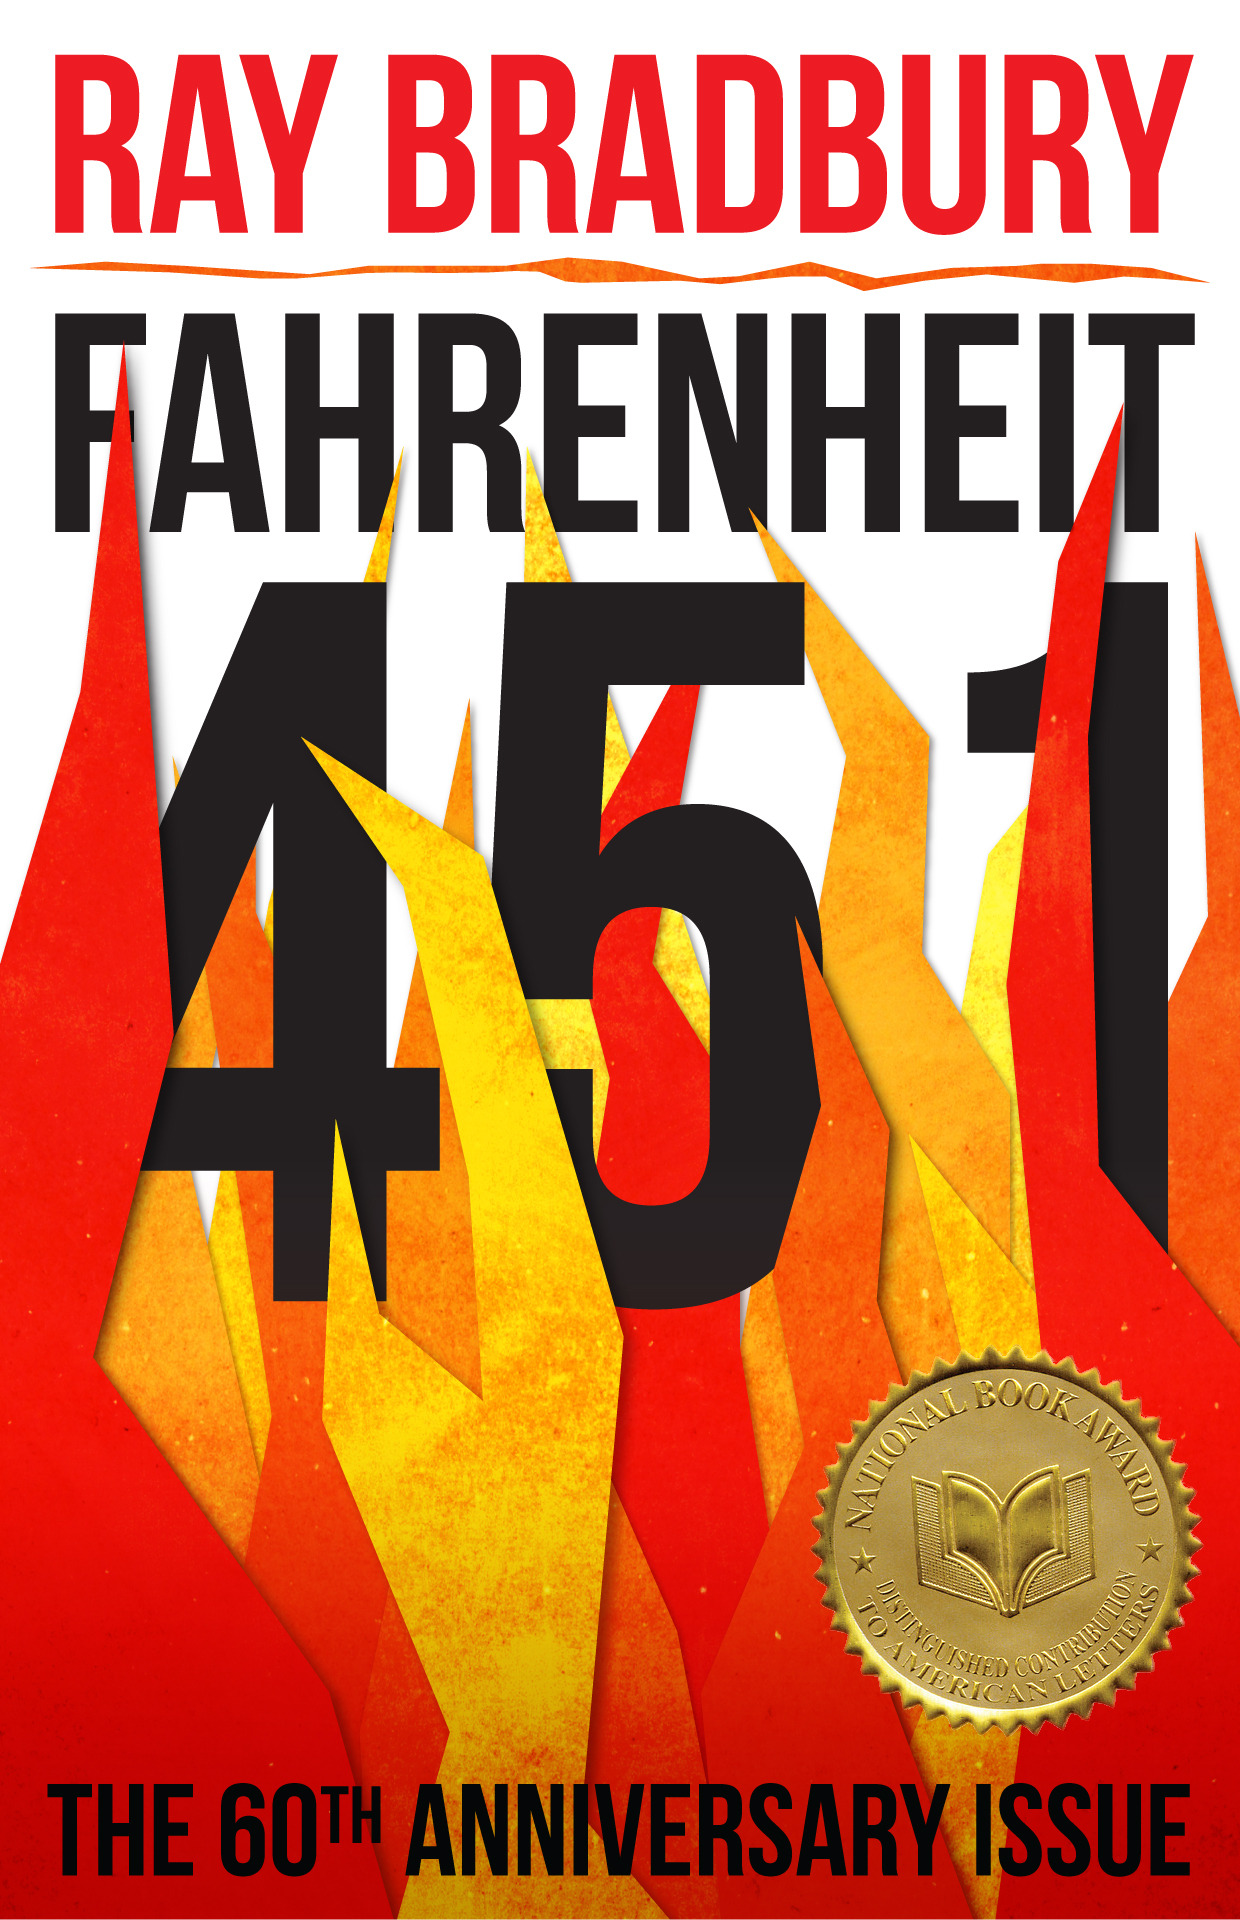 "fahrenheit451jacketcontest:  ""Stylized flames that seem to be made of paper engulf the cover of this classic sci-fi novel."" Sam Richman, Cambridge, MA  ""In celebration of the upcoming 60th anniversary of Ray Bradbury's Fahrenheit 451, Simon & Schuster invites you to design a new cover for this iconic classic."" Cool design contest for book nerds! You know what to do…"